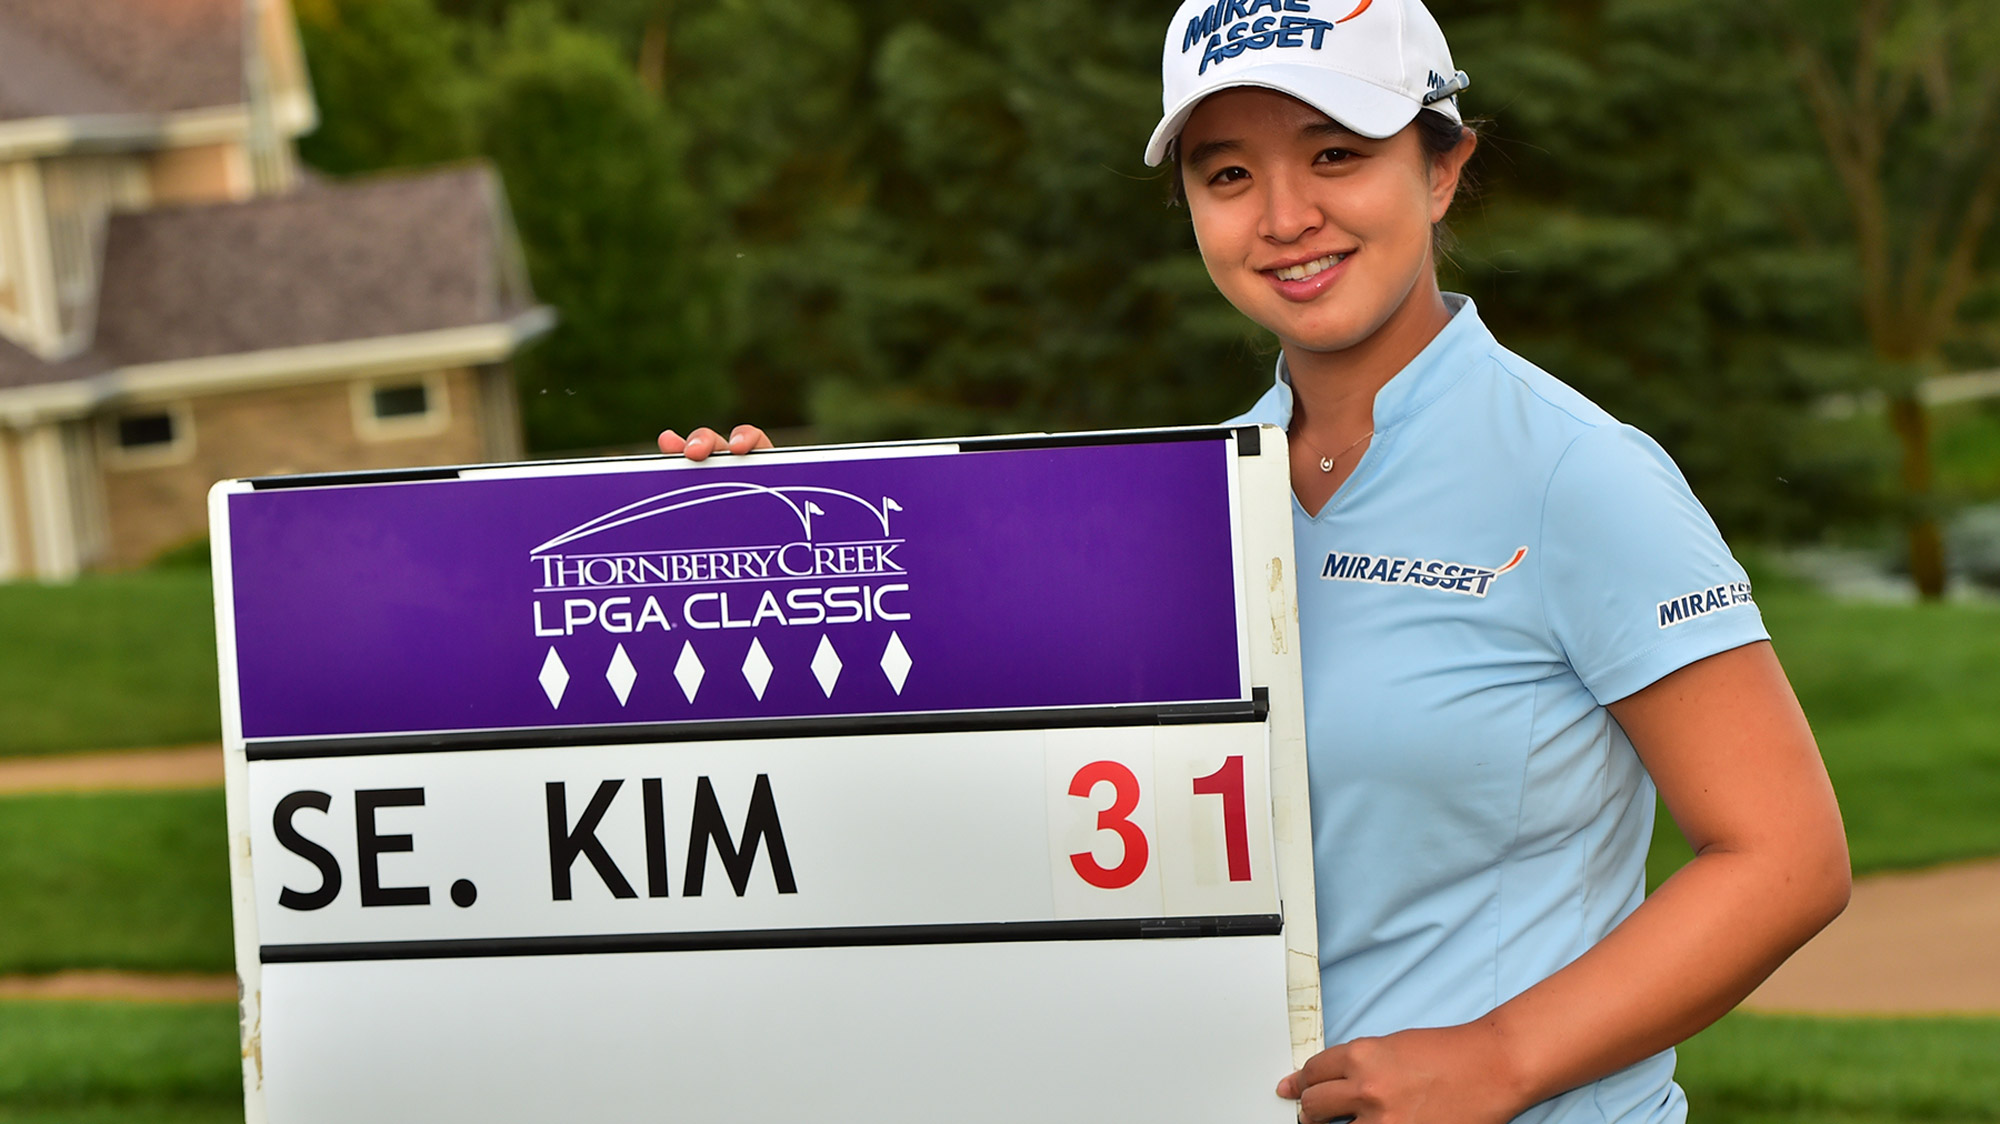 Lydia Ko fades late at Thornberry Creek, Sei Young Kim notches record victory